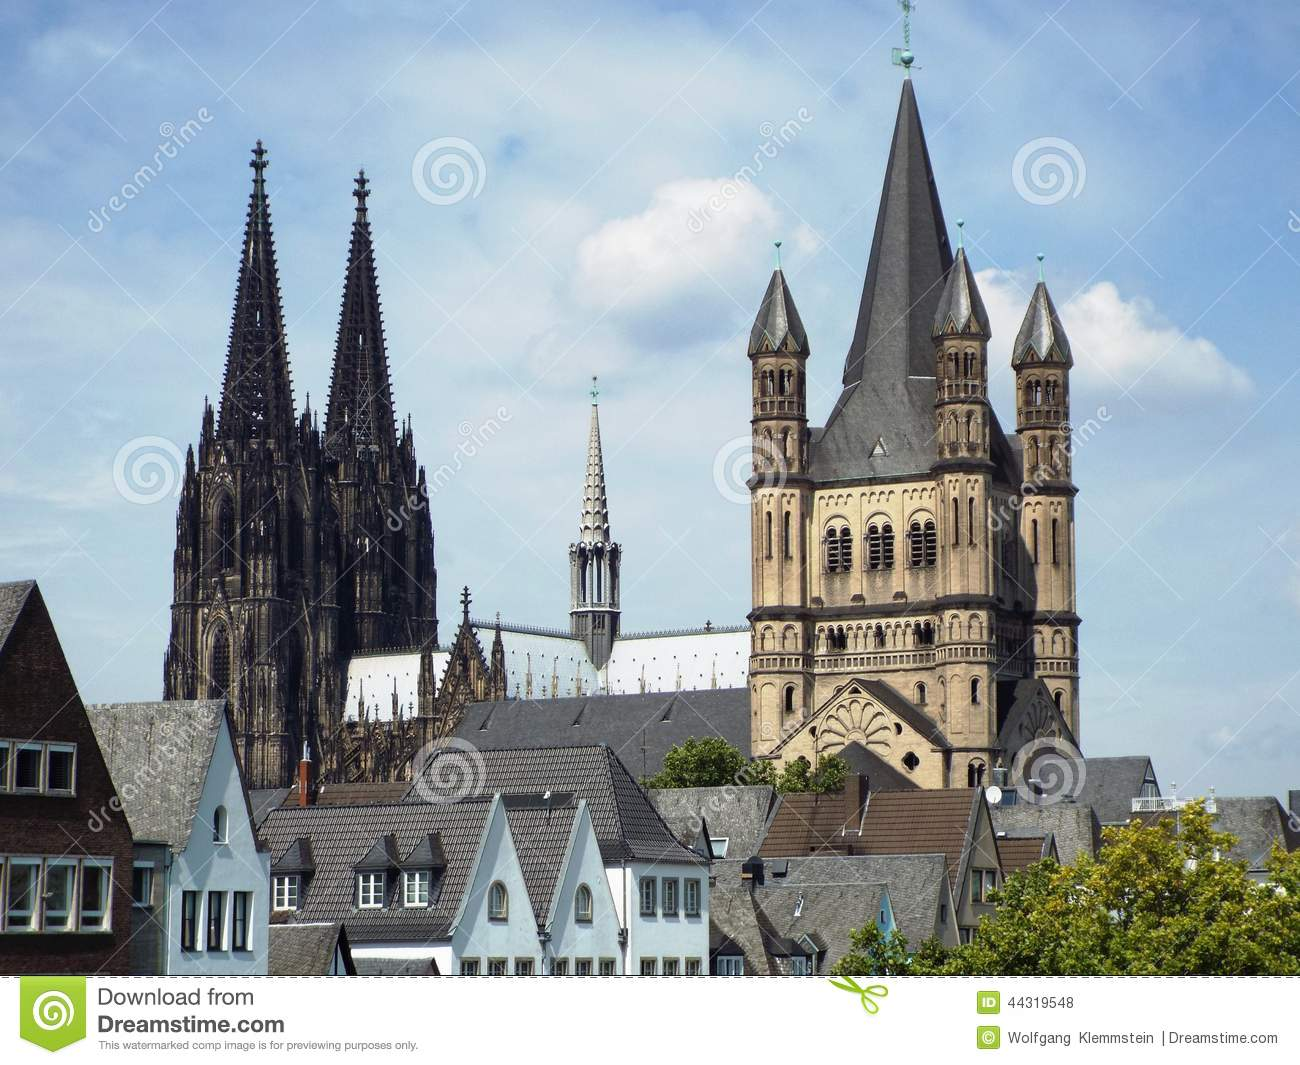 Cologne Cathedral and Gross St. Martin church